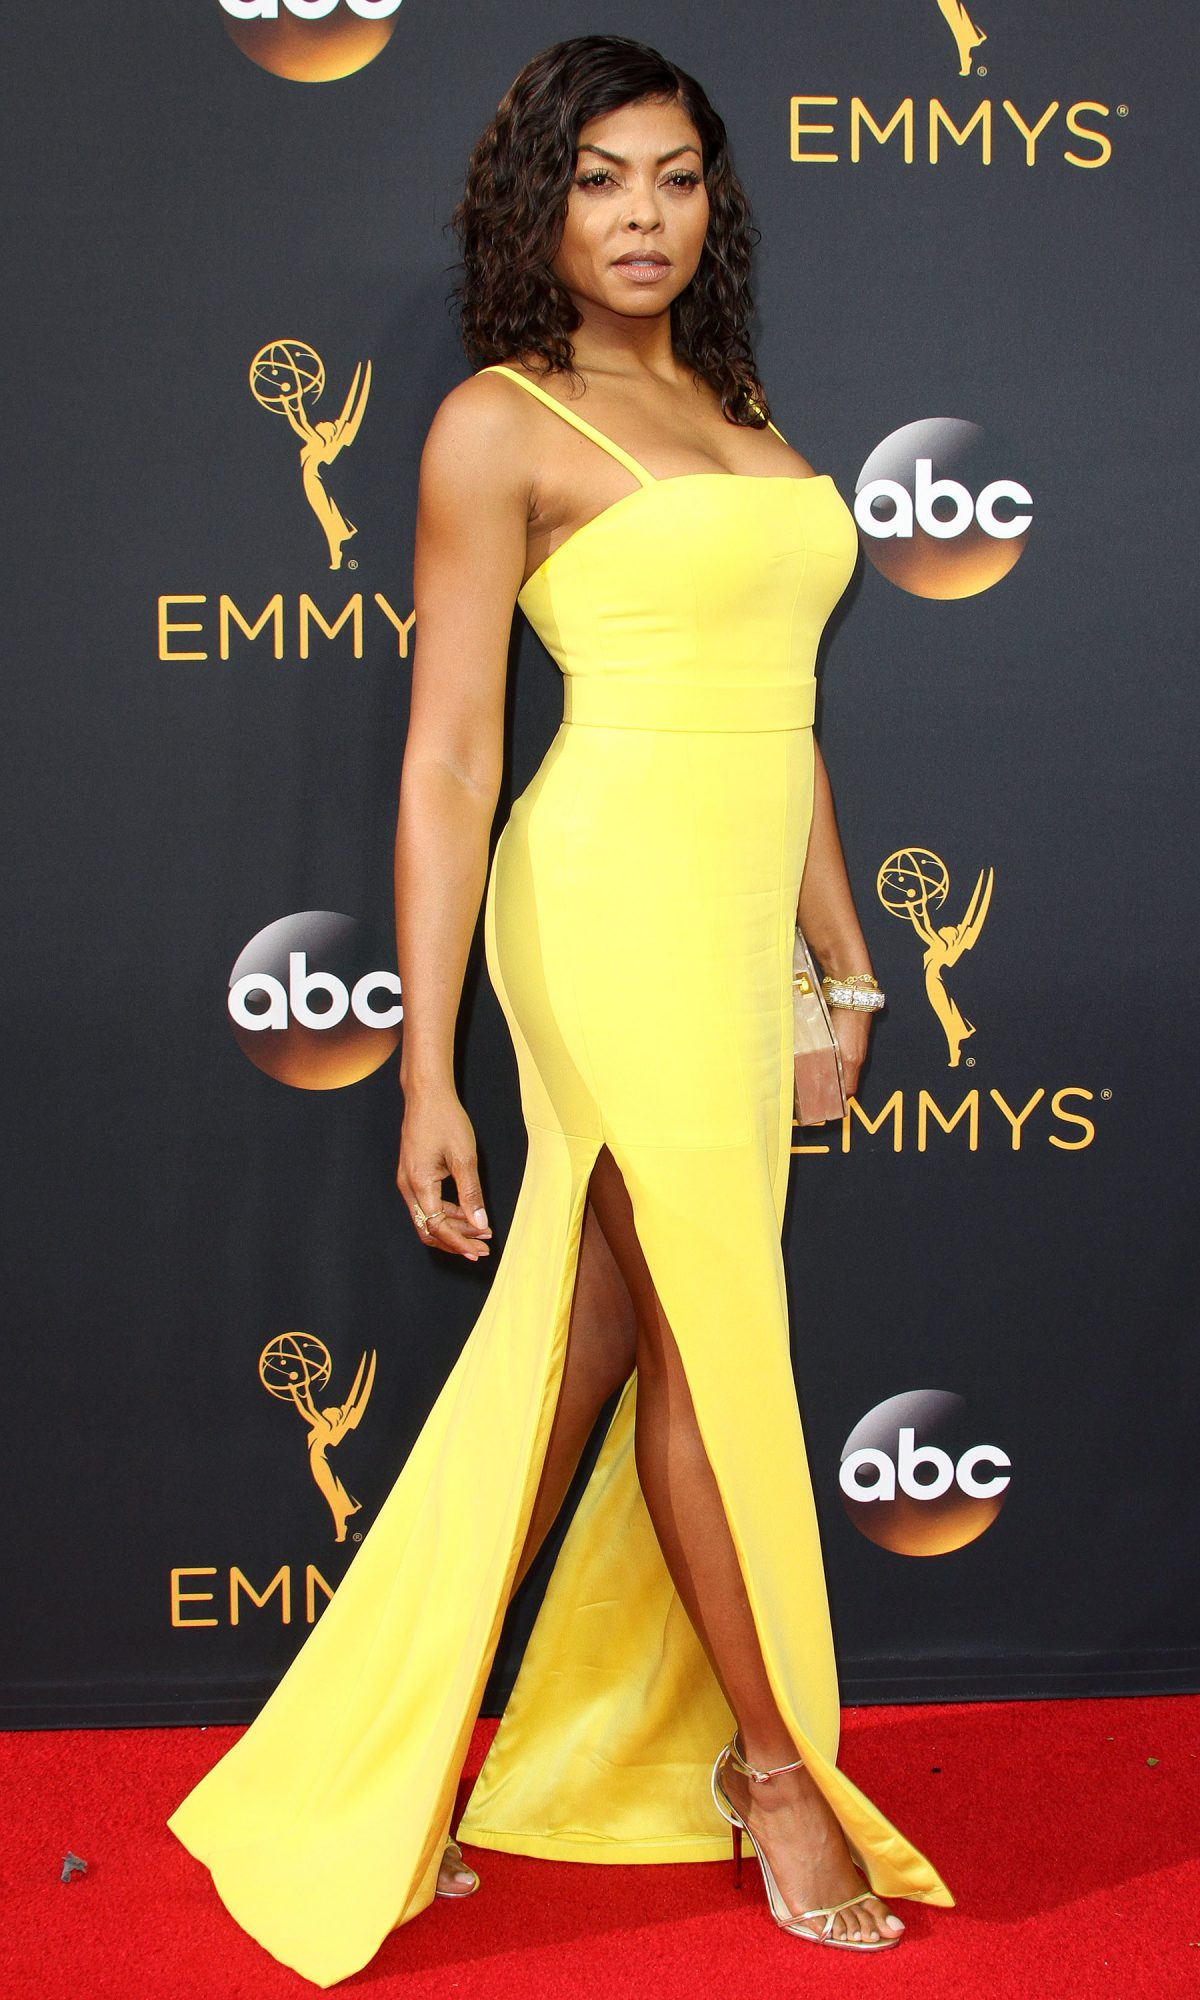 68th Emmy Awards Arrivals 2016 held at the Microsoft Theater Featuring: Taraji P. Henson Where: Los Angeles, California, United States When: 18 Sep 2016 Credit: Adriana M. Barraza/WENN.com